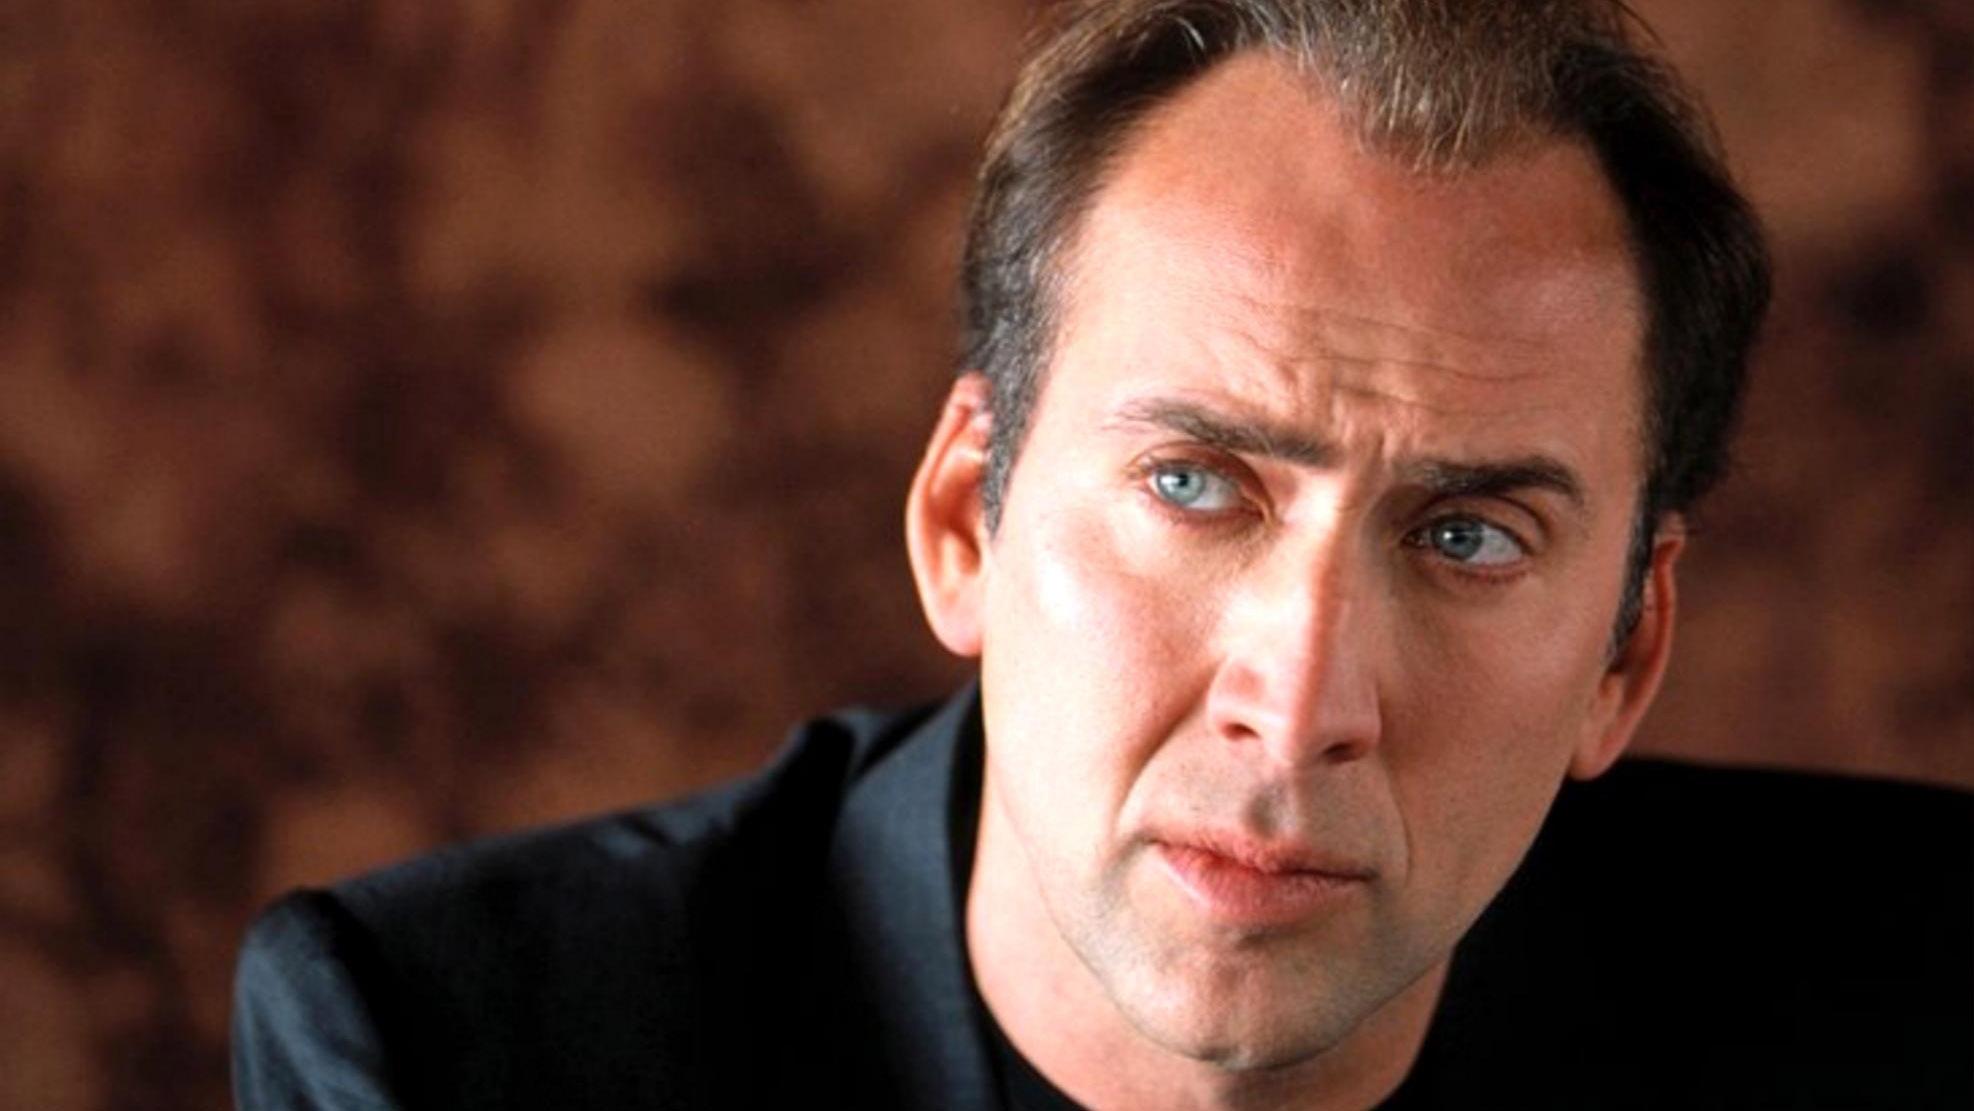 nicolas cage - photo #27